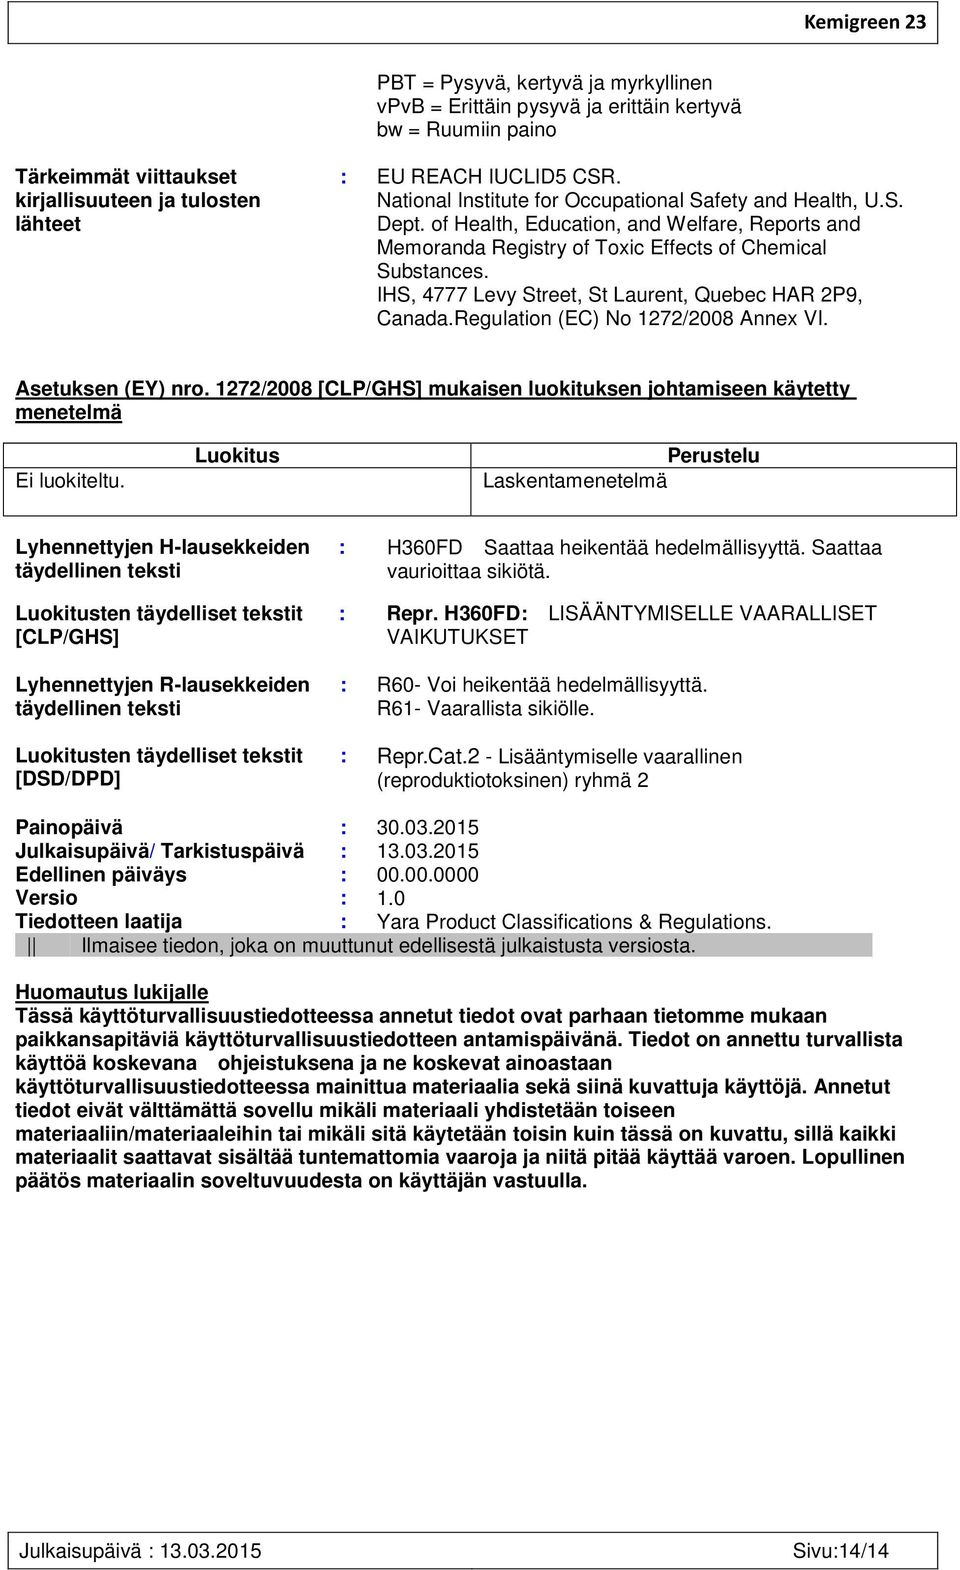 IHS, 4777 Levy Street, St Laurent, Quebec HAR 2P9, Canada.Regulation (EC) No 1272/2008 Annex VI. Asetuksen (EY) nro.